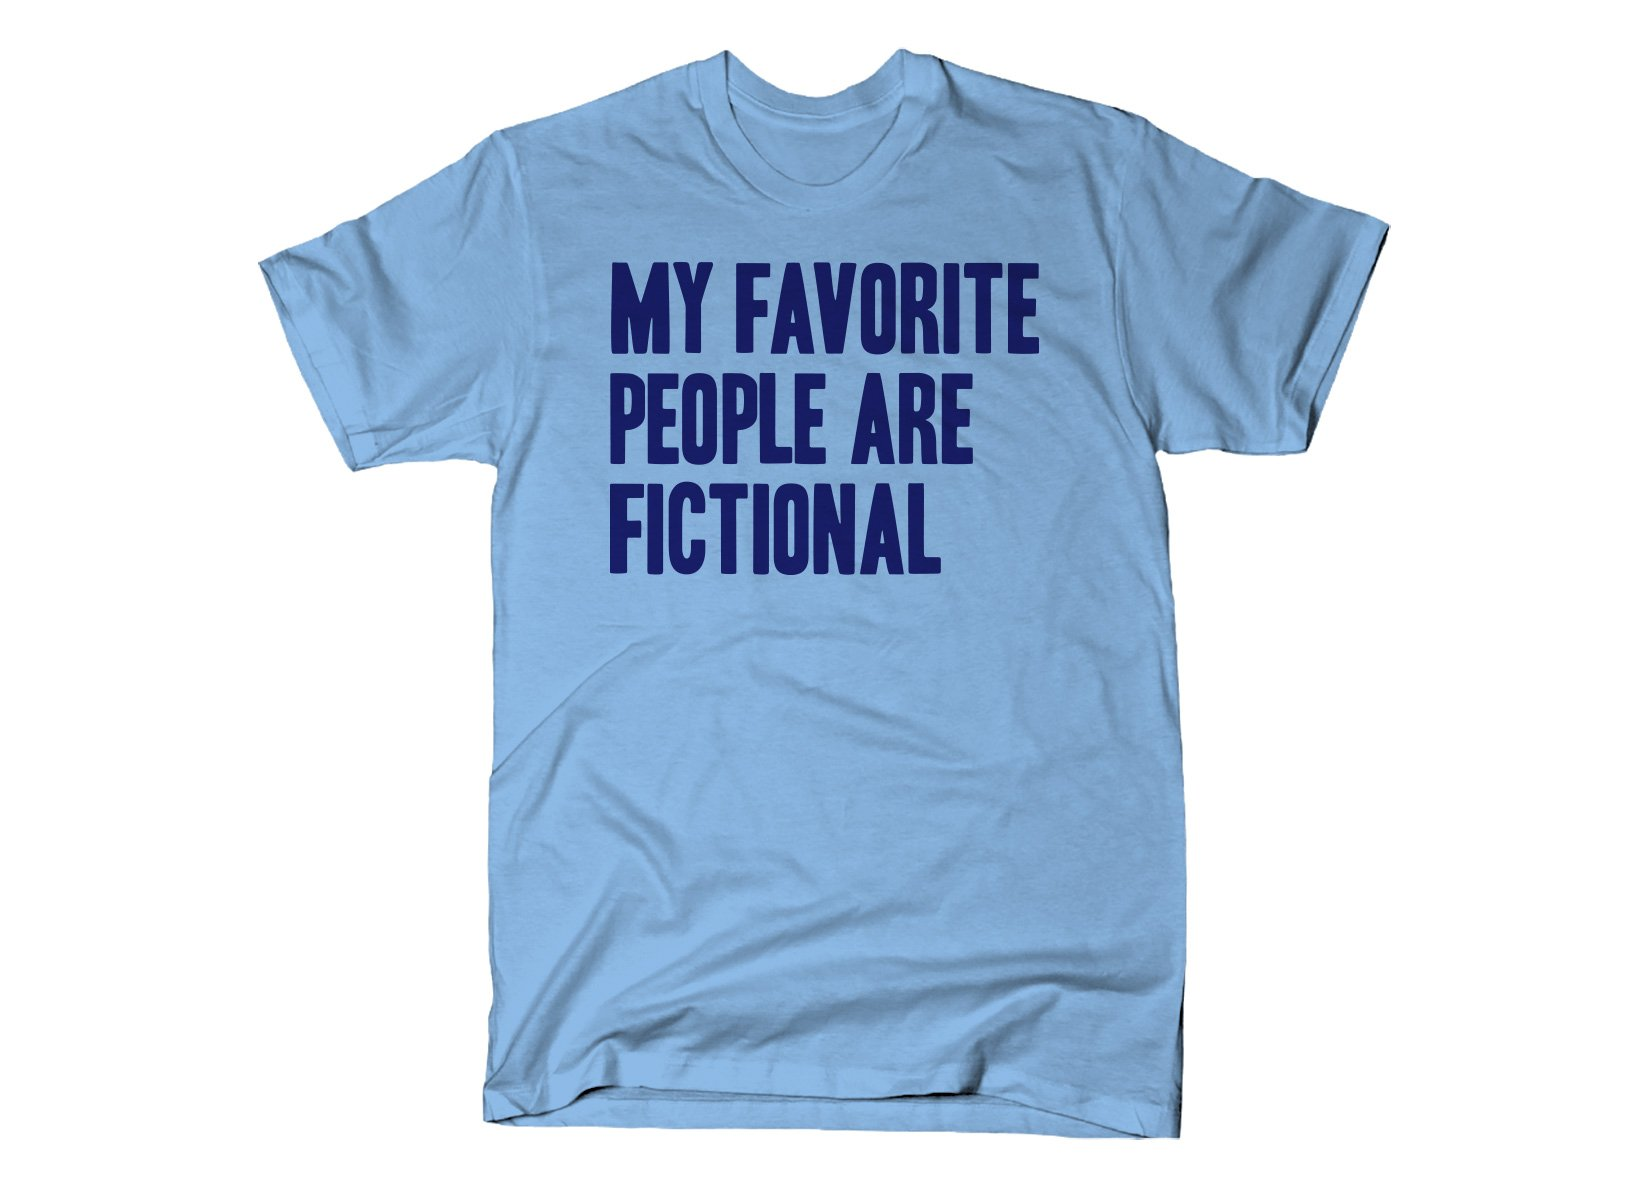 My Favorite People Are Fictional on Mens T-Shirt